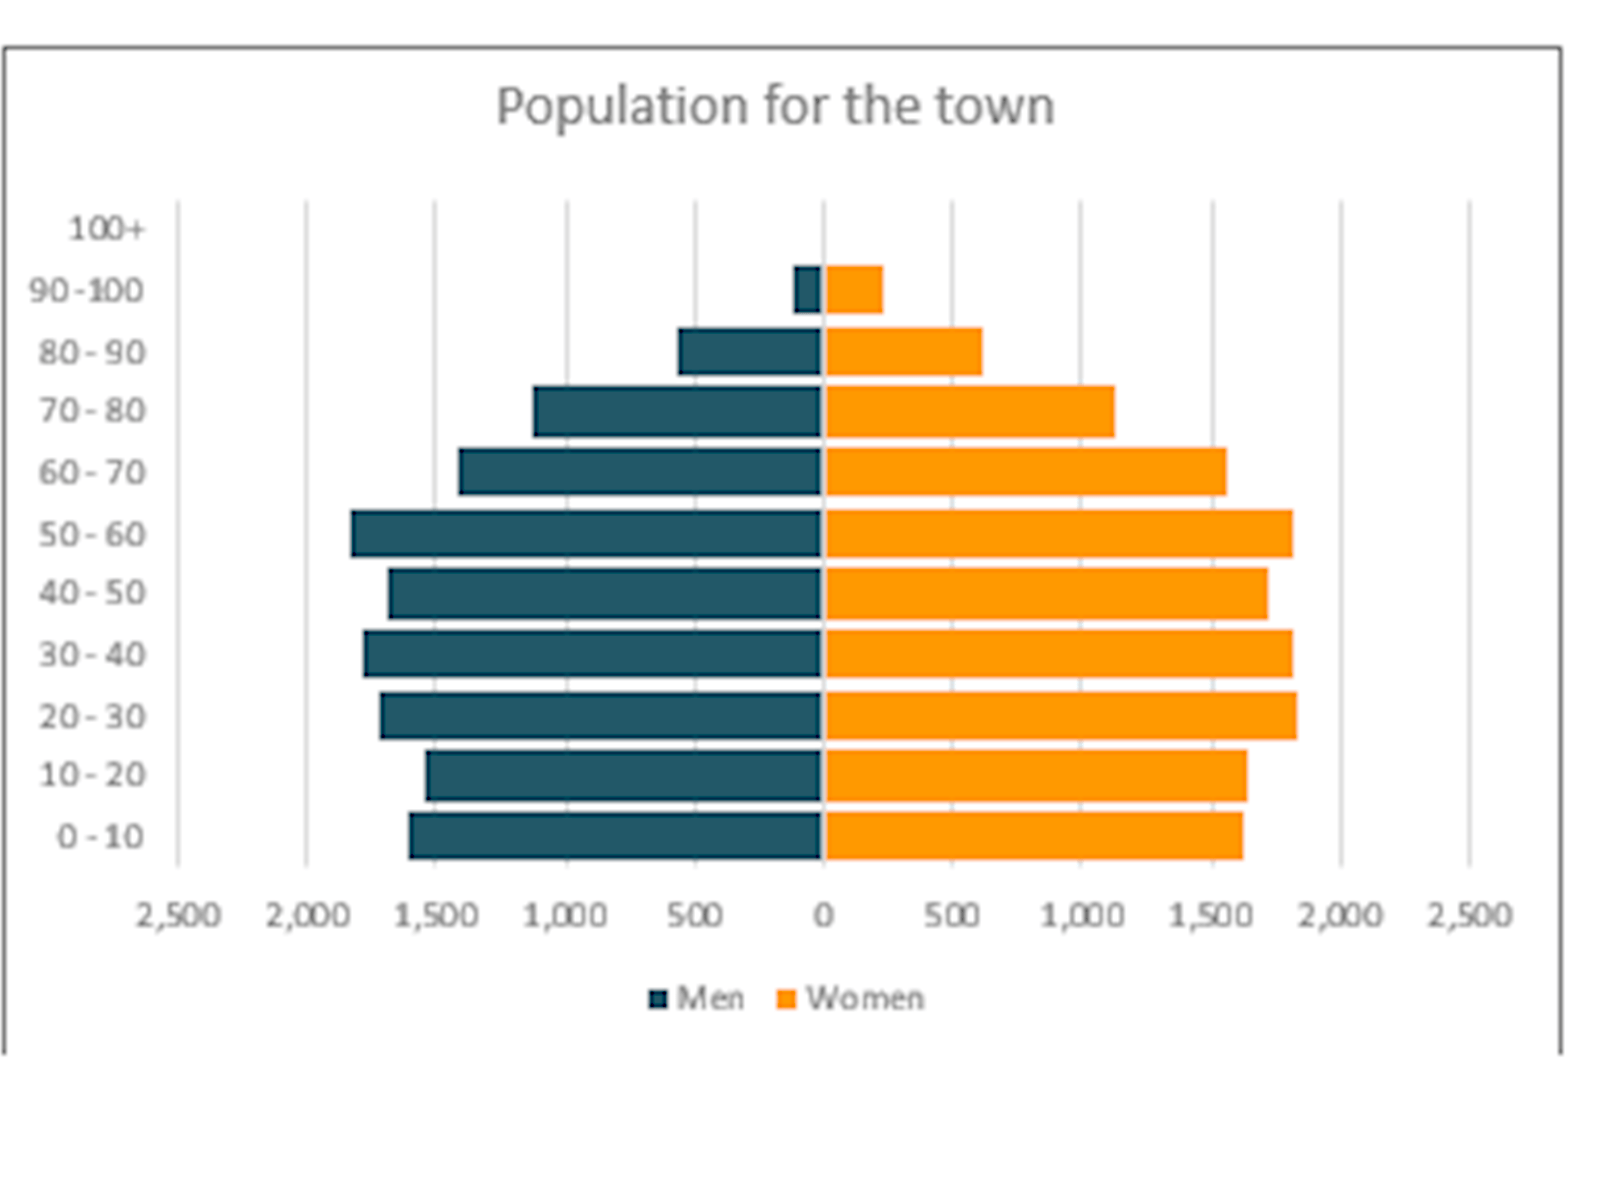 Image of stacked bar chart